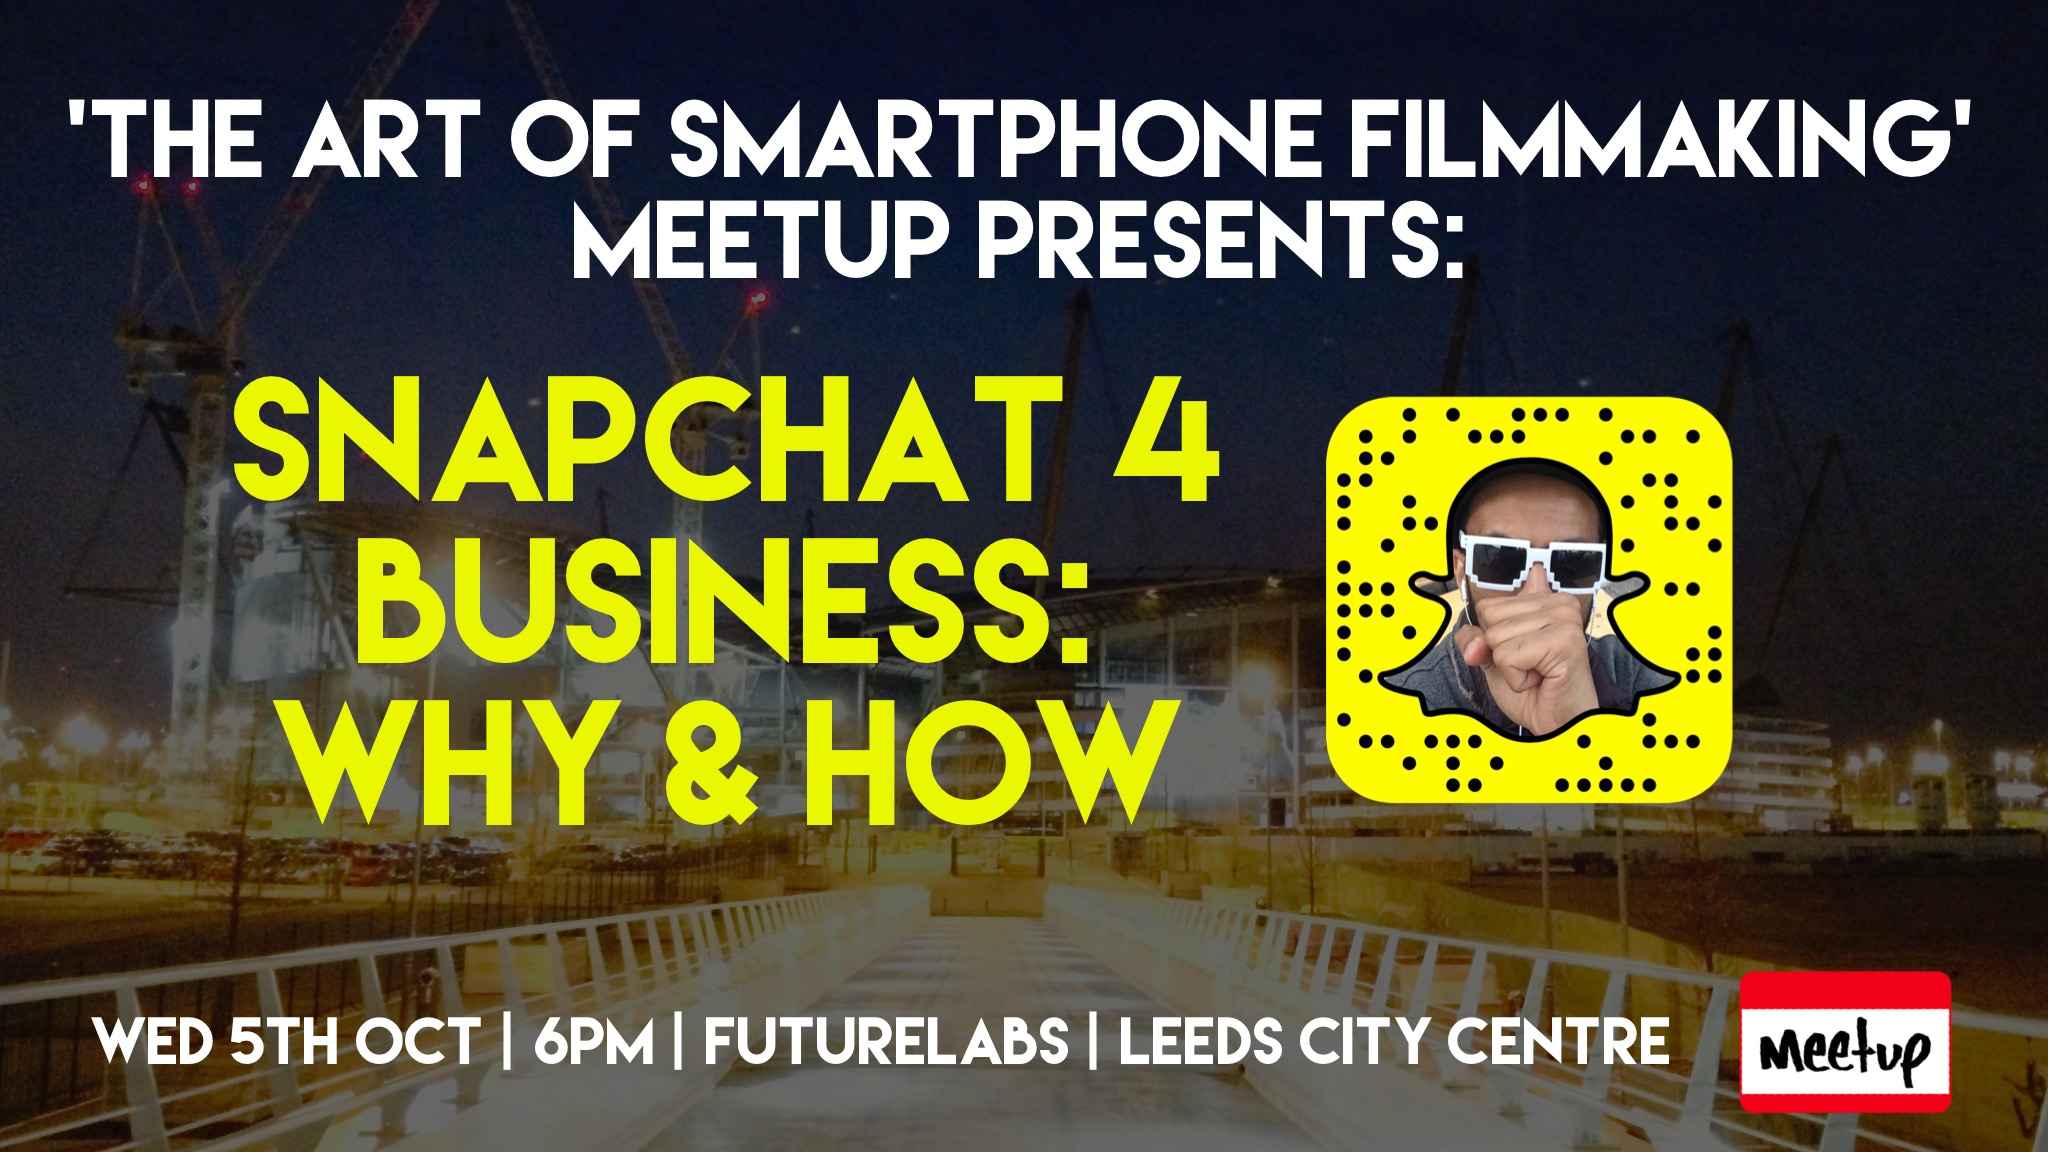 Snapchat 4 Business Meetup